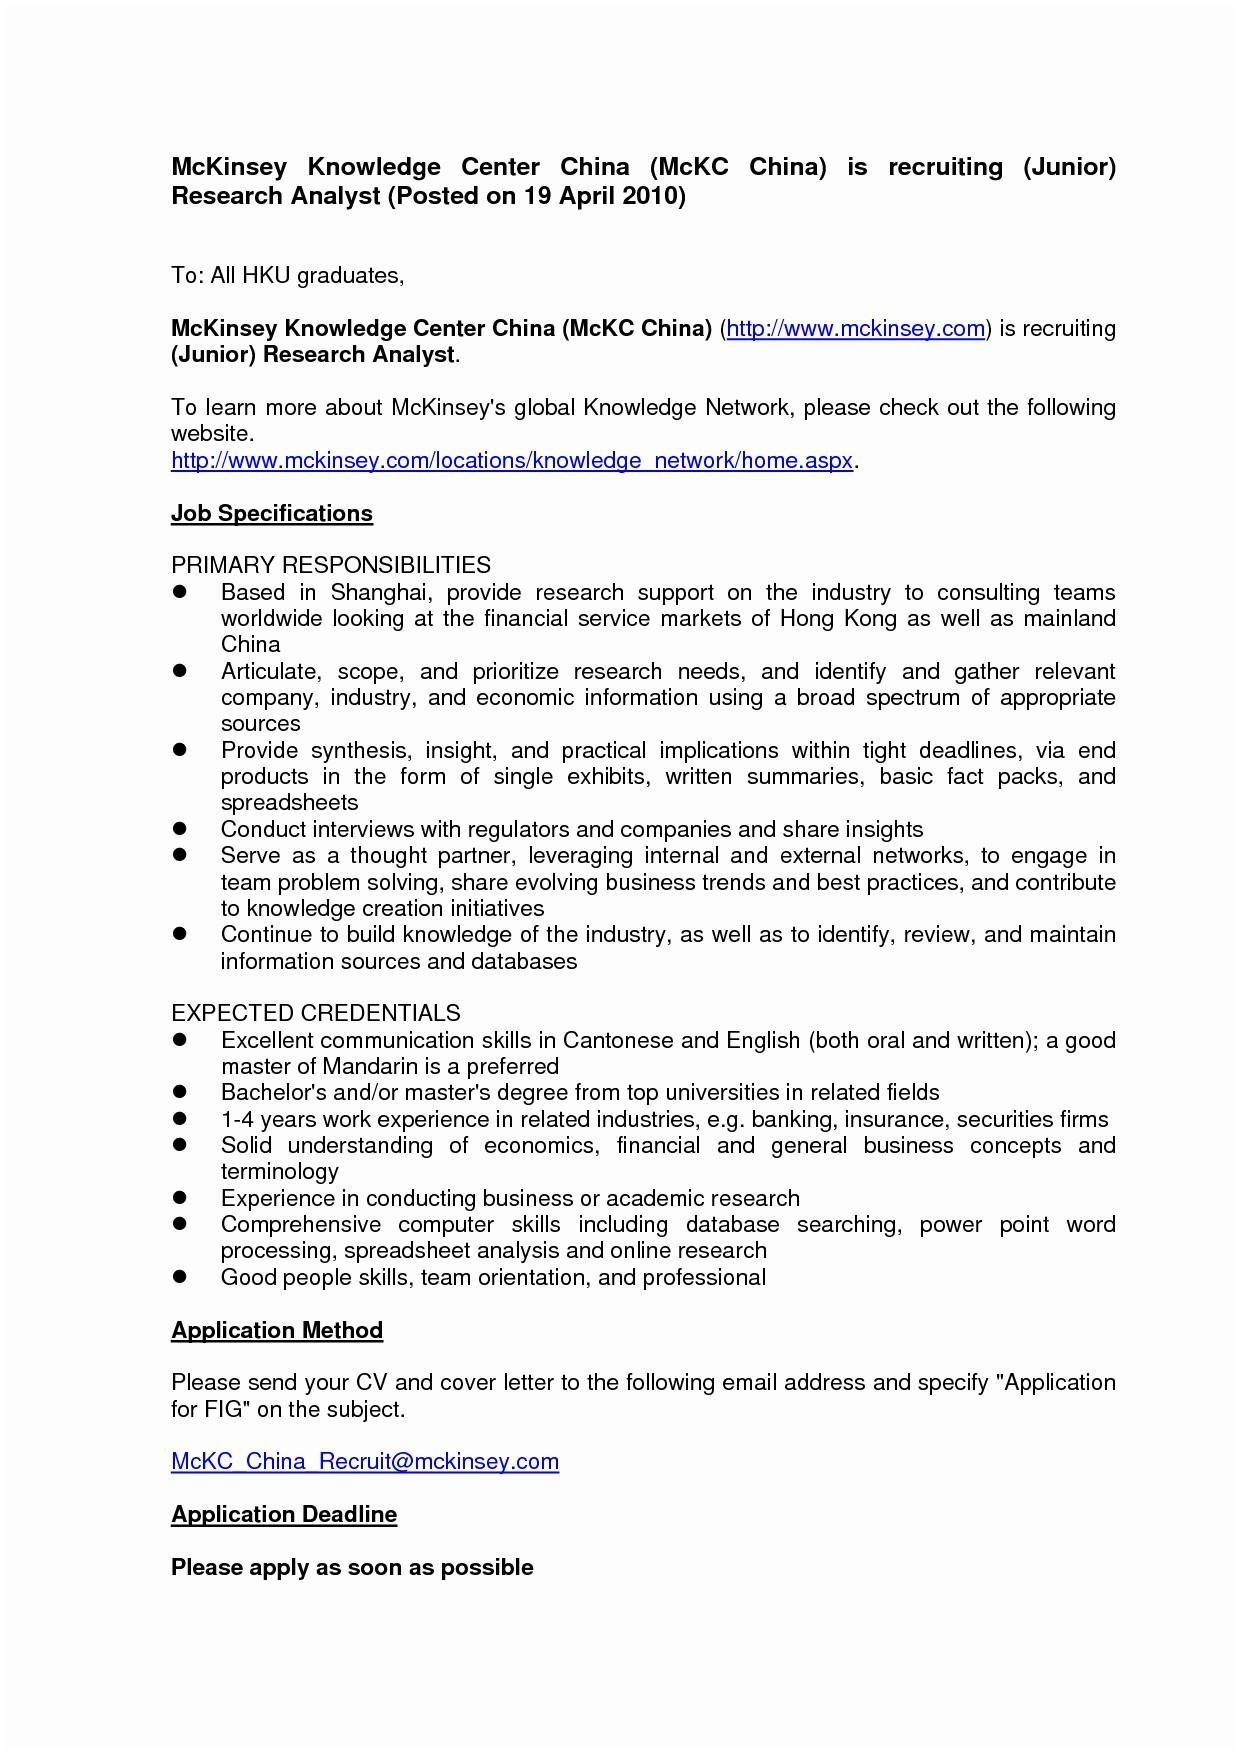 conditional offer of employment letter template example-Job fer Letter For Accountant Refrence New Job Fer Letter Template Us Copy Od Consultant Cover Letter 14-n